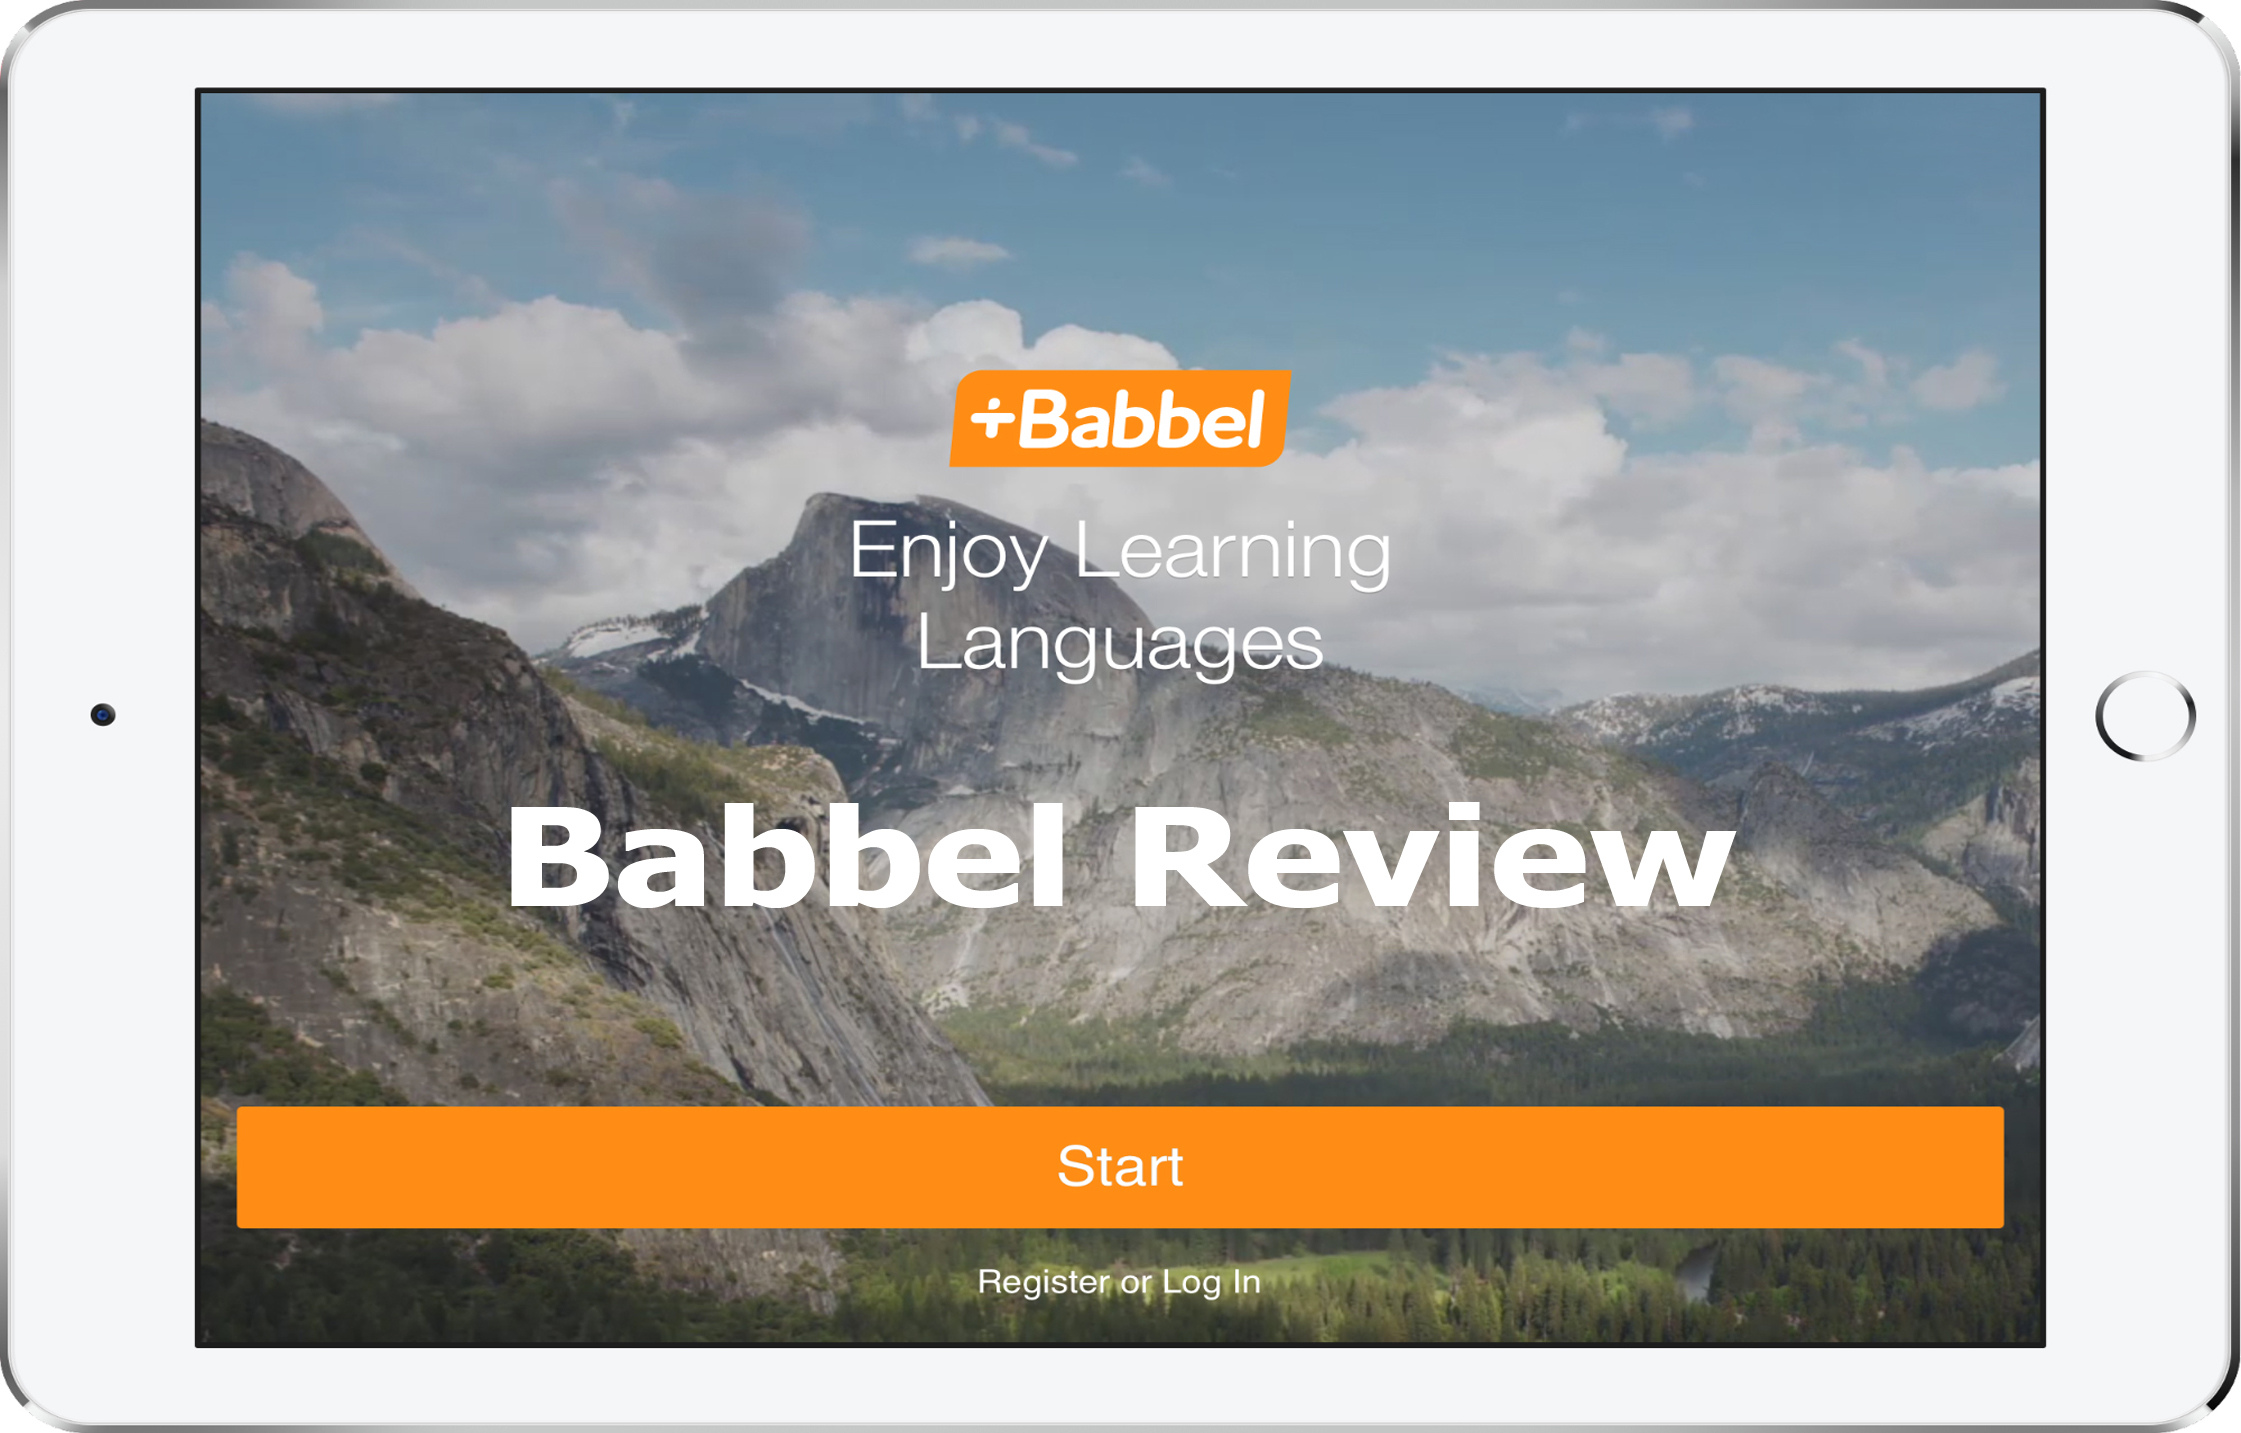 Babbel Review - Babbel.com Review